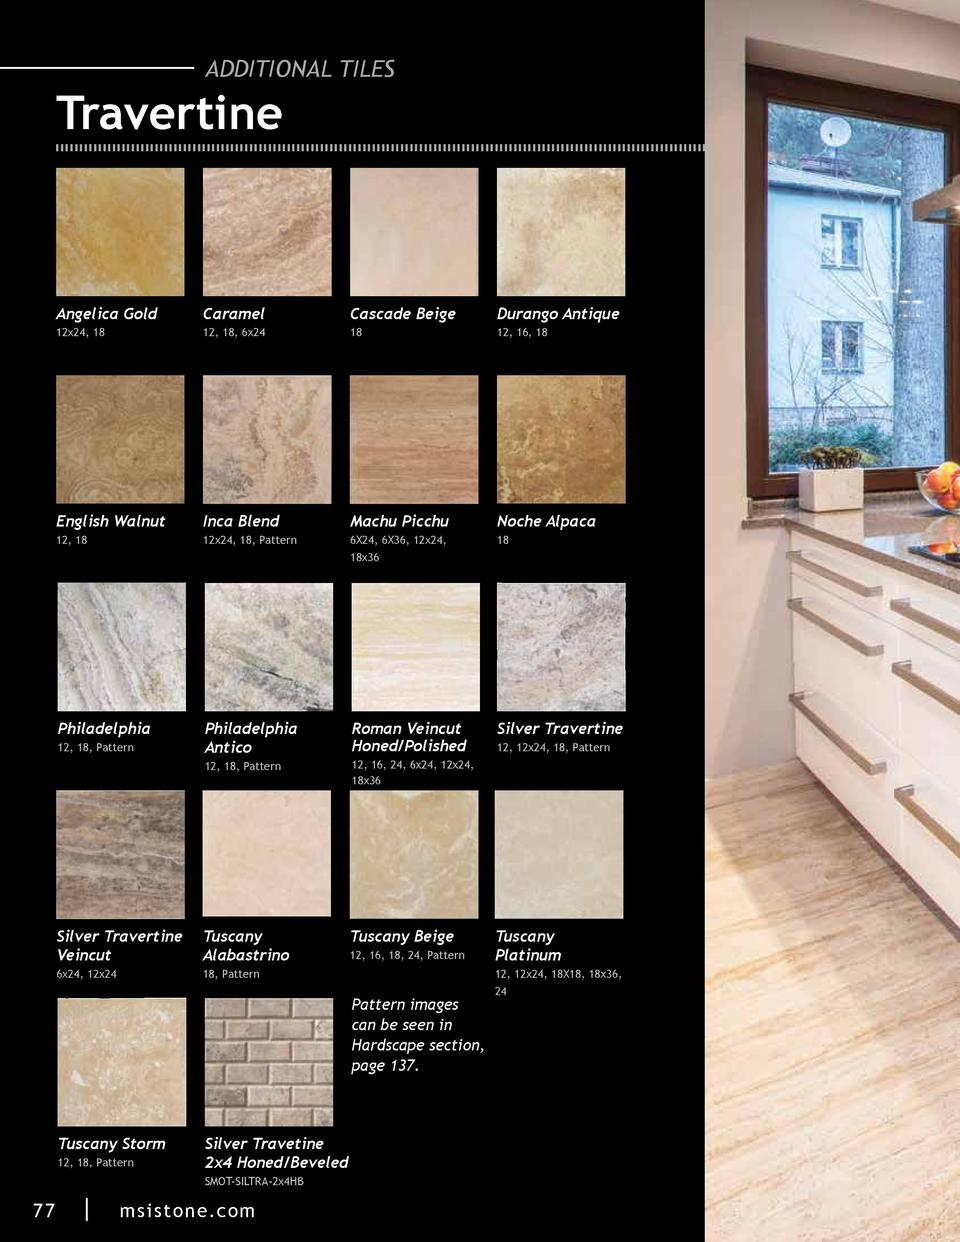 ADDITIONAL TILES  Travertine  Angelica Gold  Caramel  Cascade Beige  Durango Antique  12x24, 18  12, 18, 6x24  18  12, 16,...